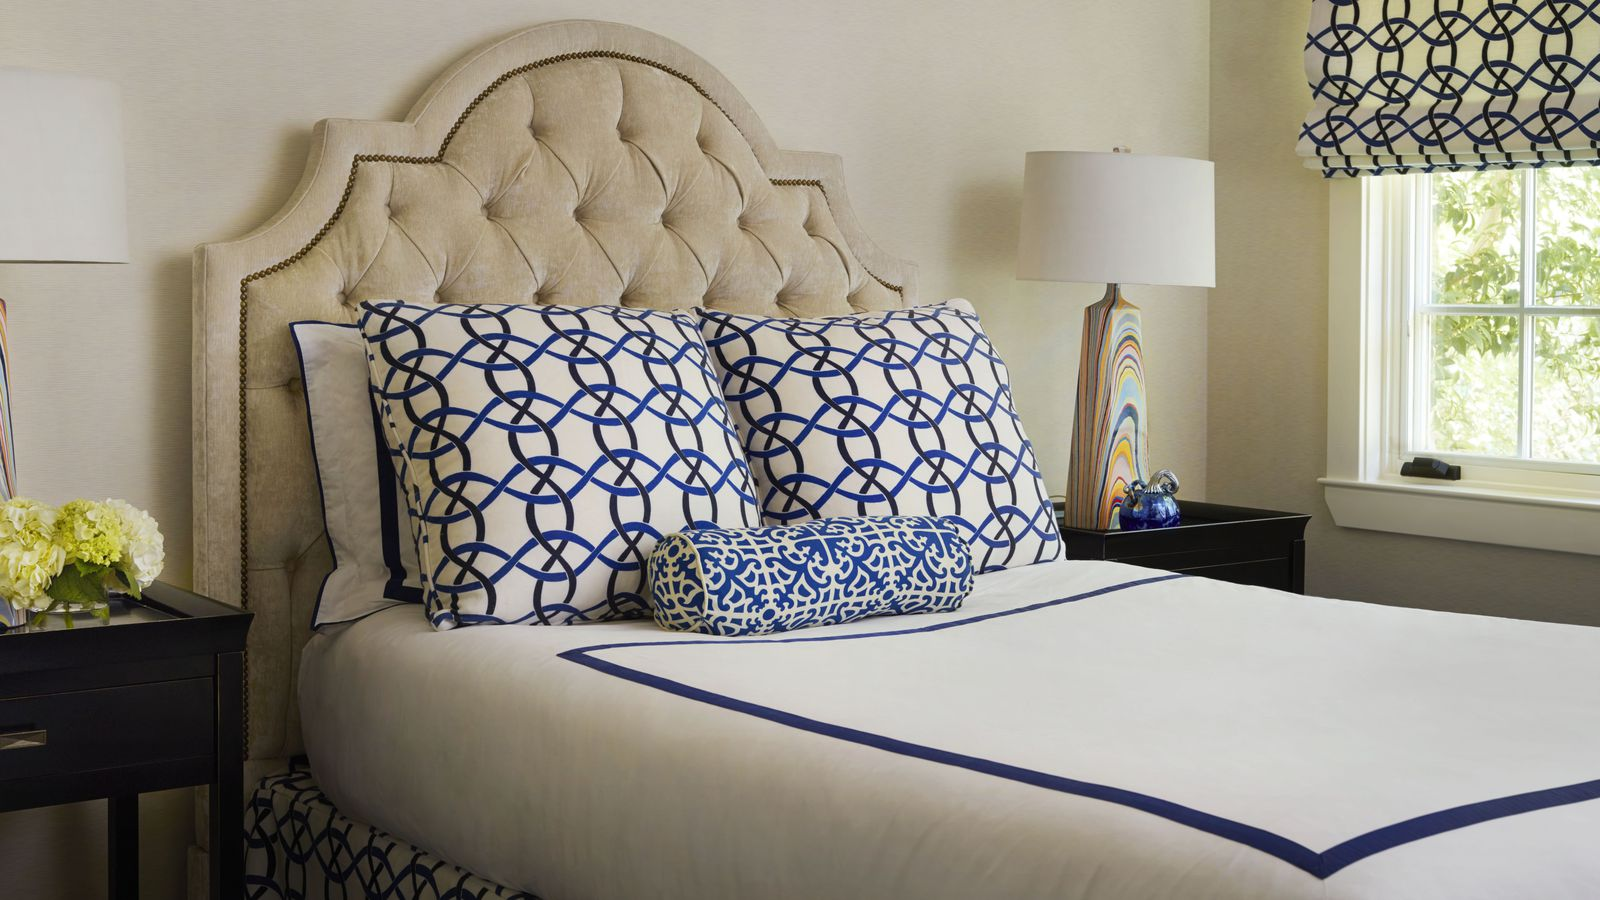 Nousdecor is doling out free interior design advice - Free interior design help ...